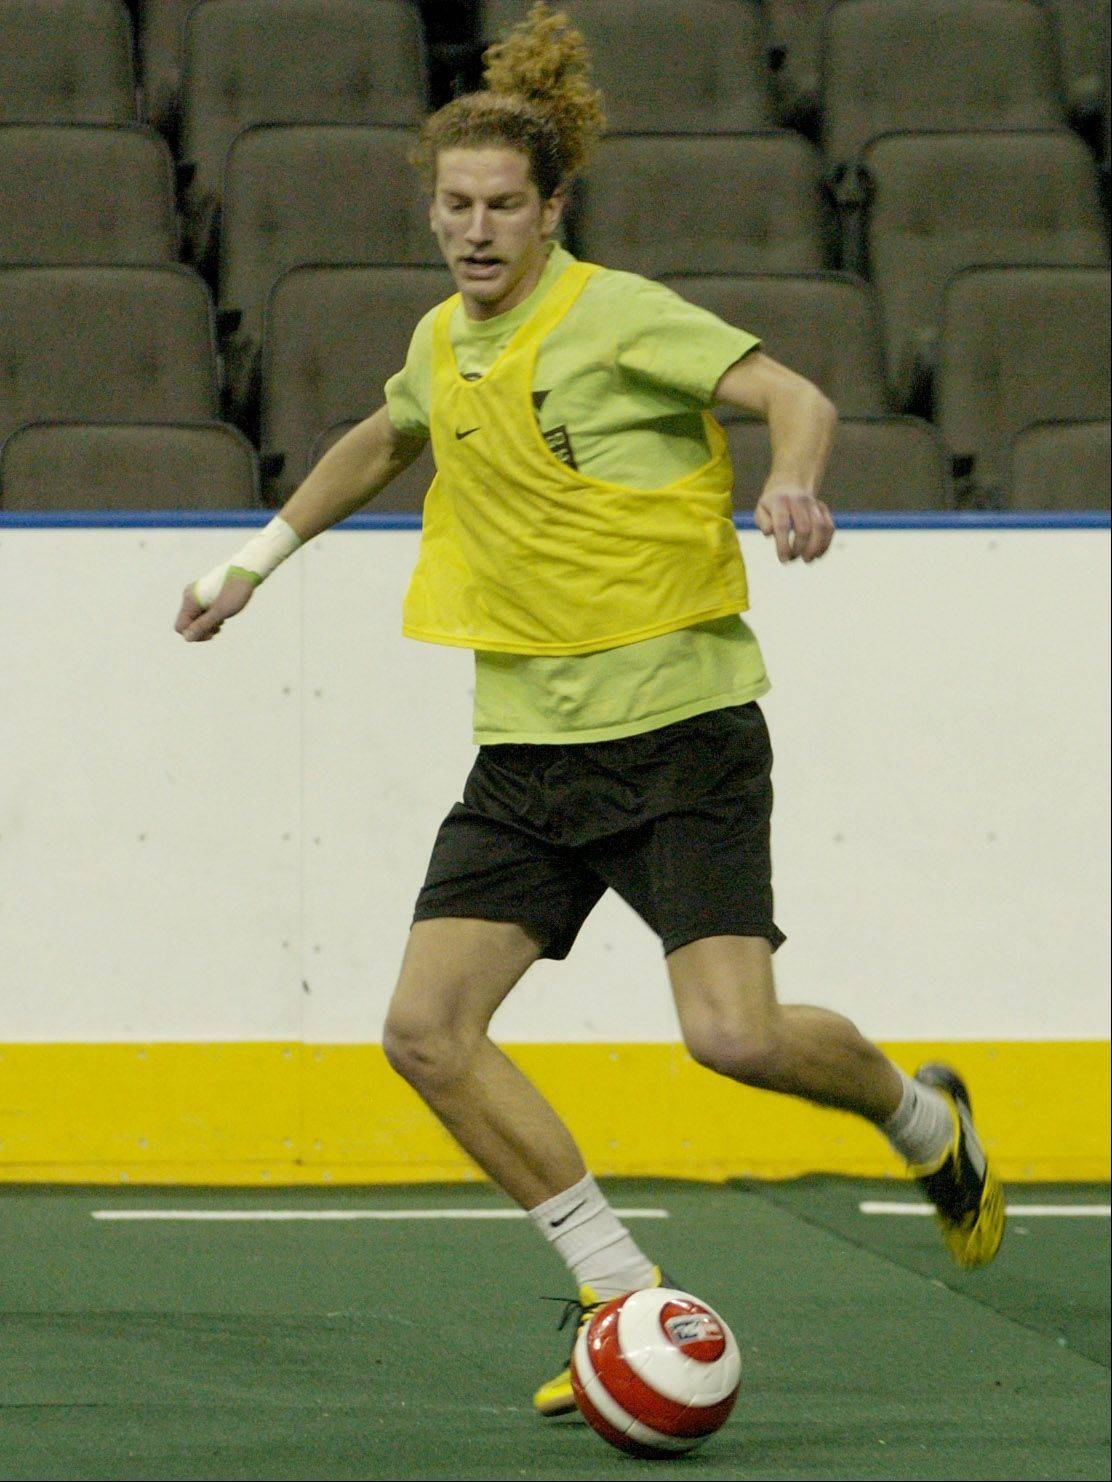 Ephraim Beard of Schaumburg works out during a practice with the Chicago Soul indoor soccer team at the Sears Centre.